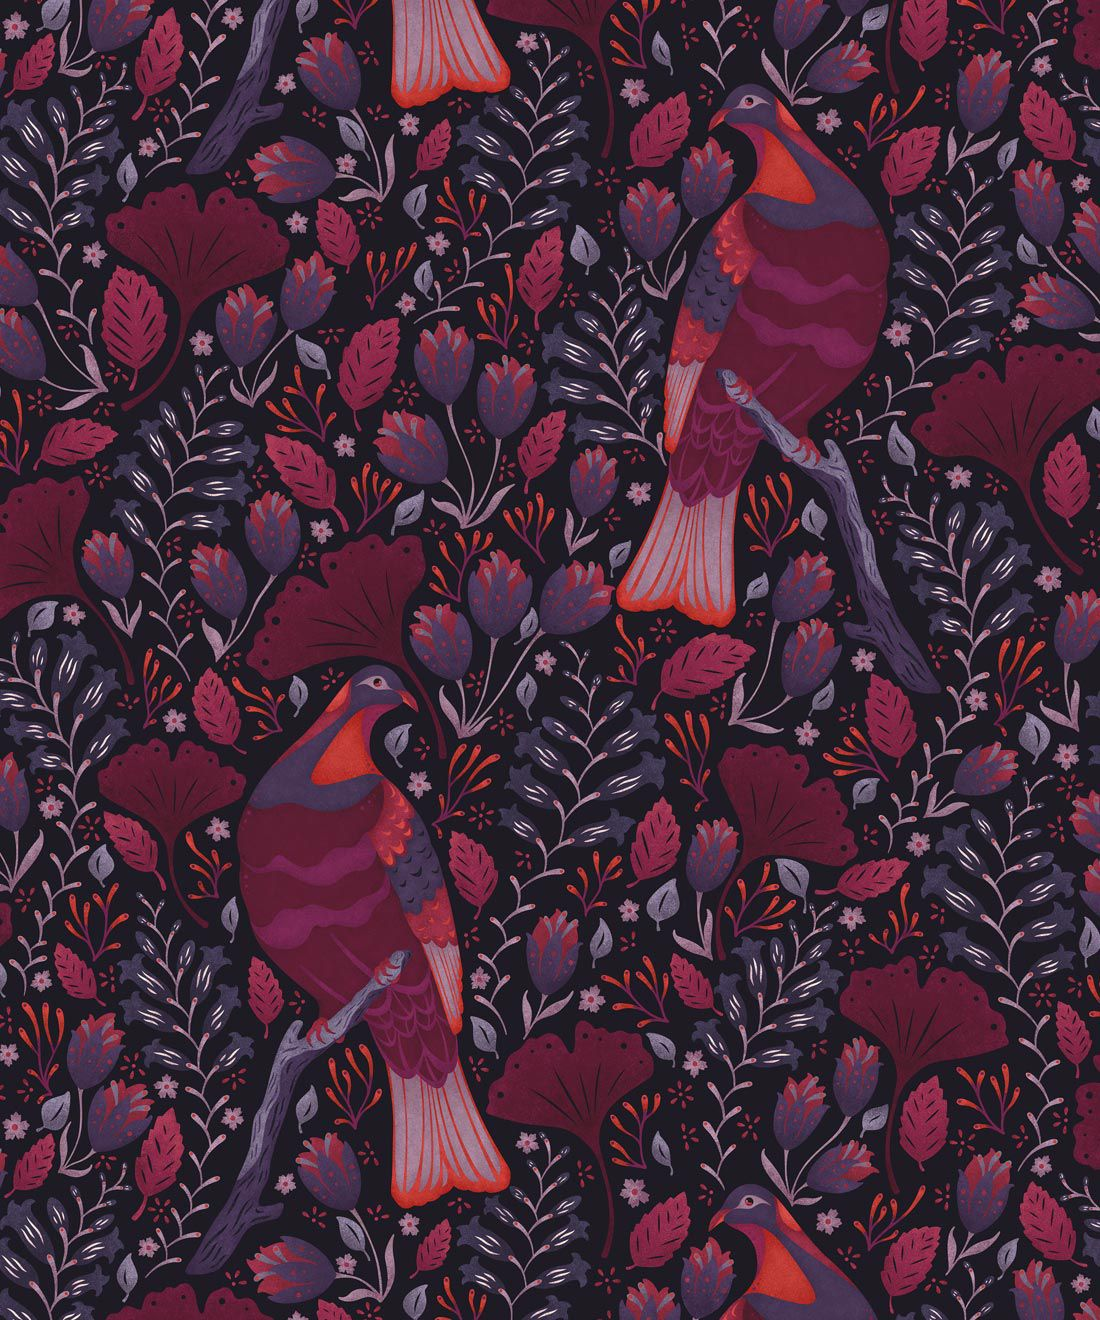 Kereru Wallpaper • Wood Pigeon• Bird Wallpaper • Maroon Wallpaper